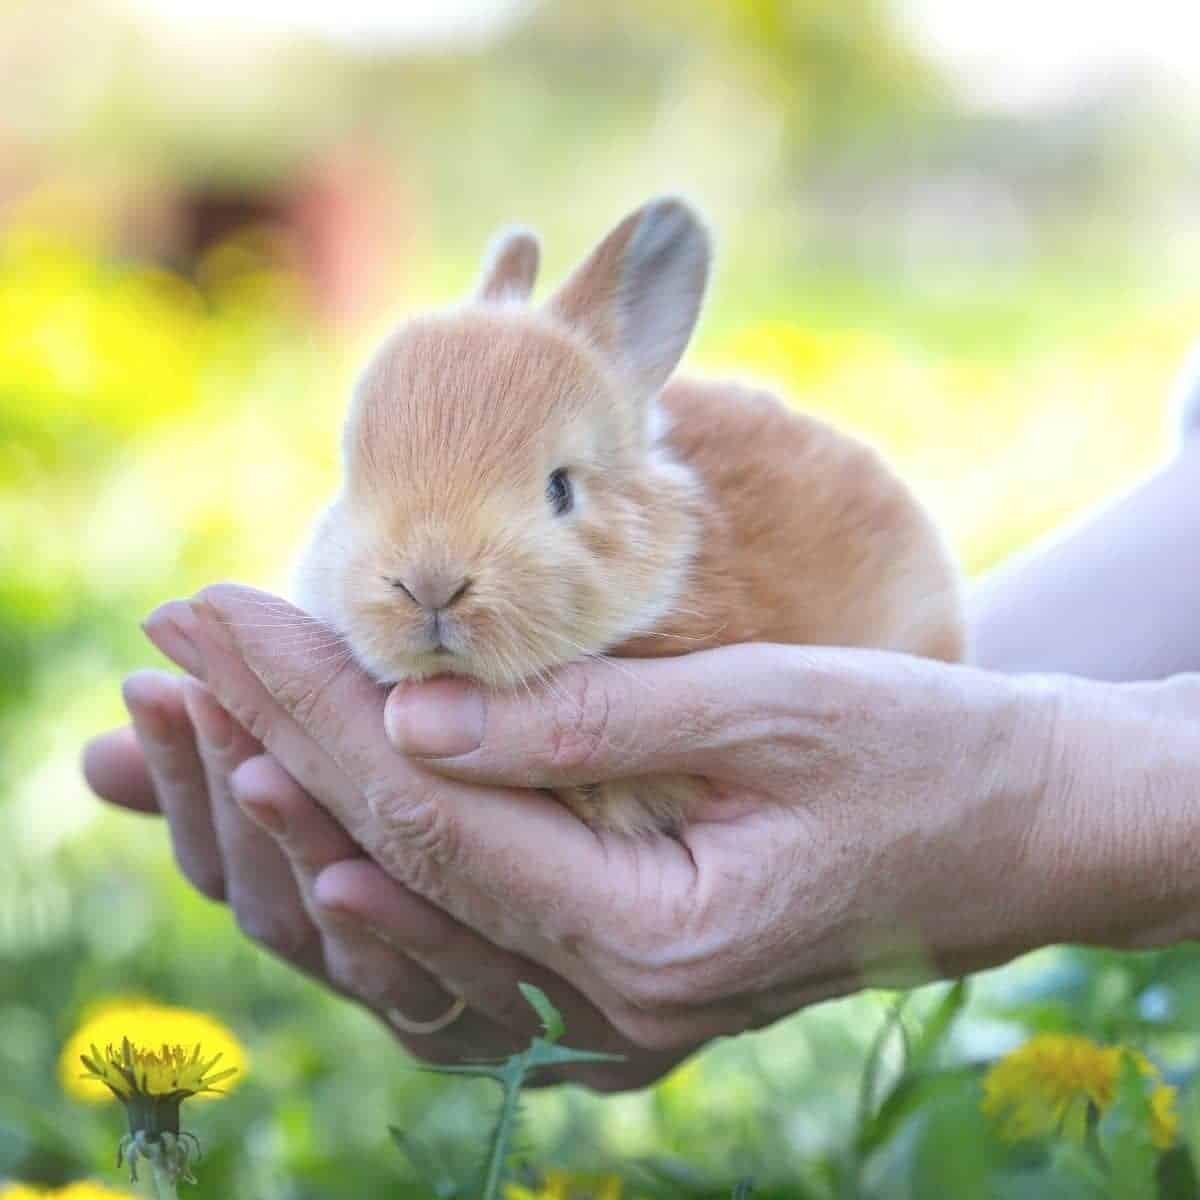 Close-up of rabbit in a person's hands.